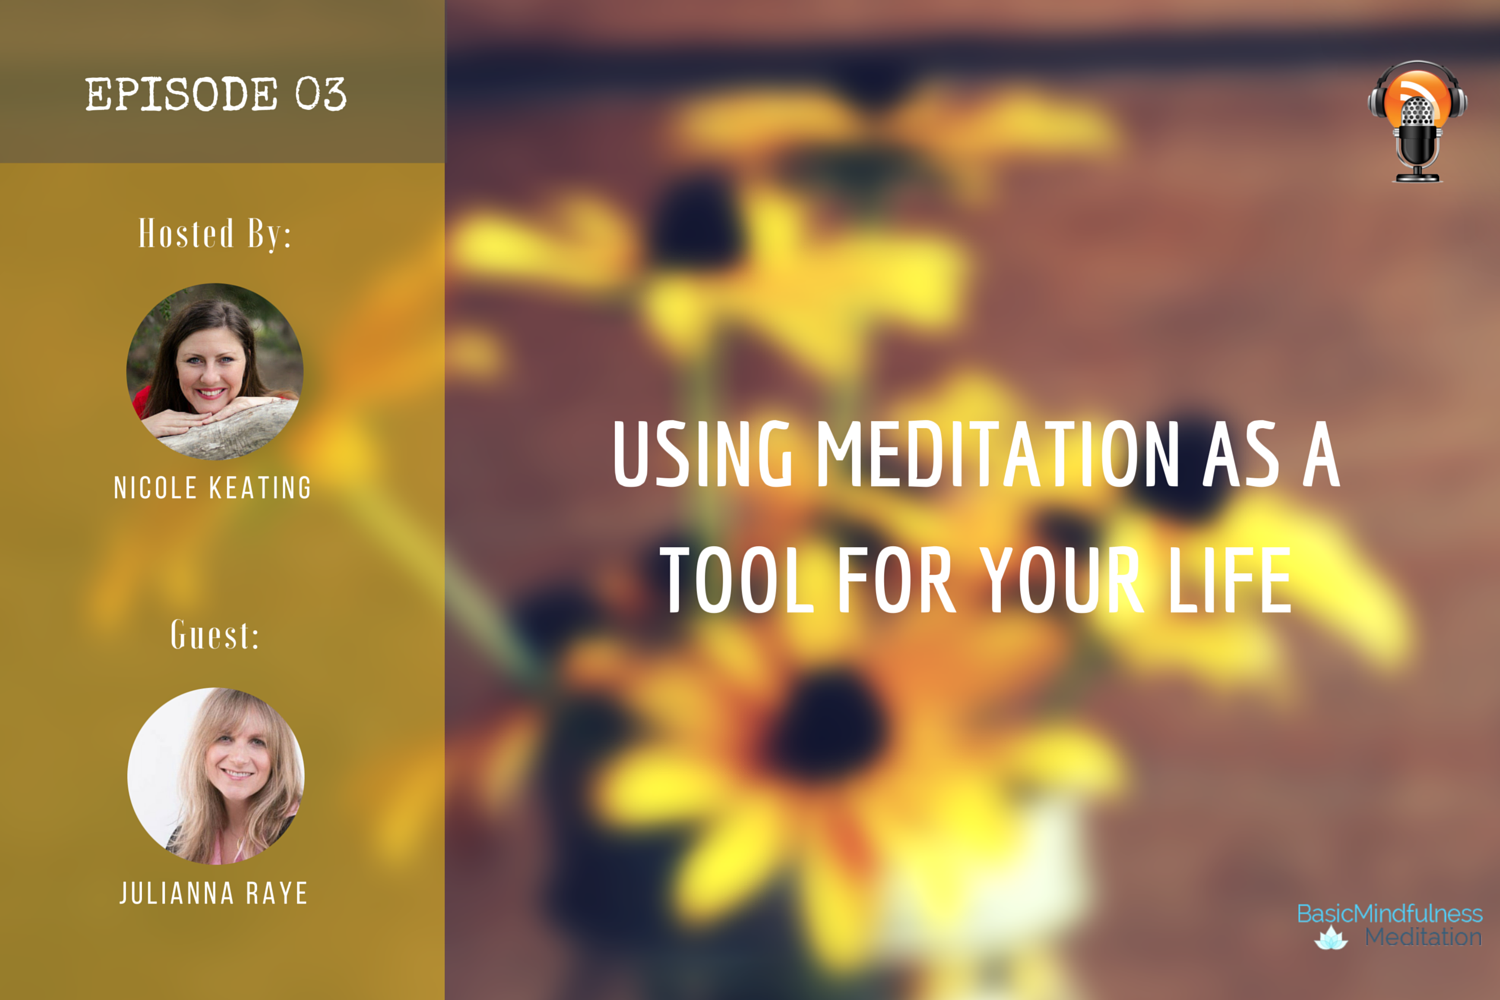 USING MEDITATION AS A TOOL FOR YOUR LIFE